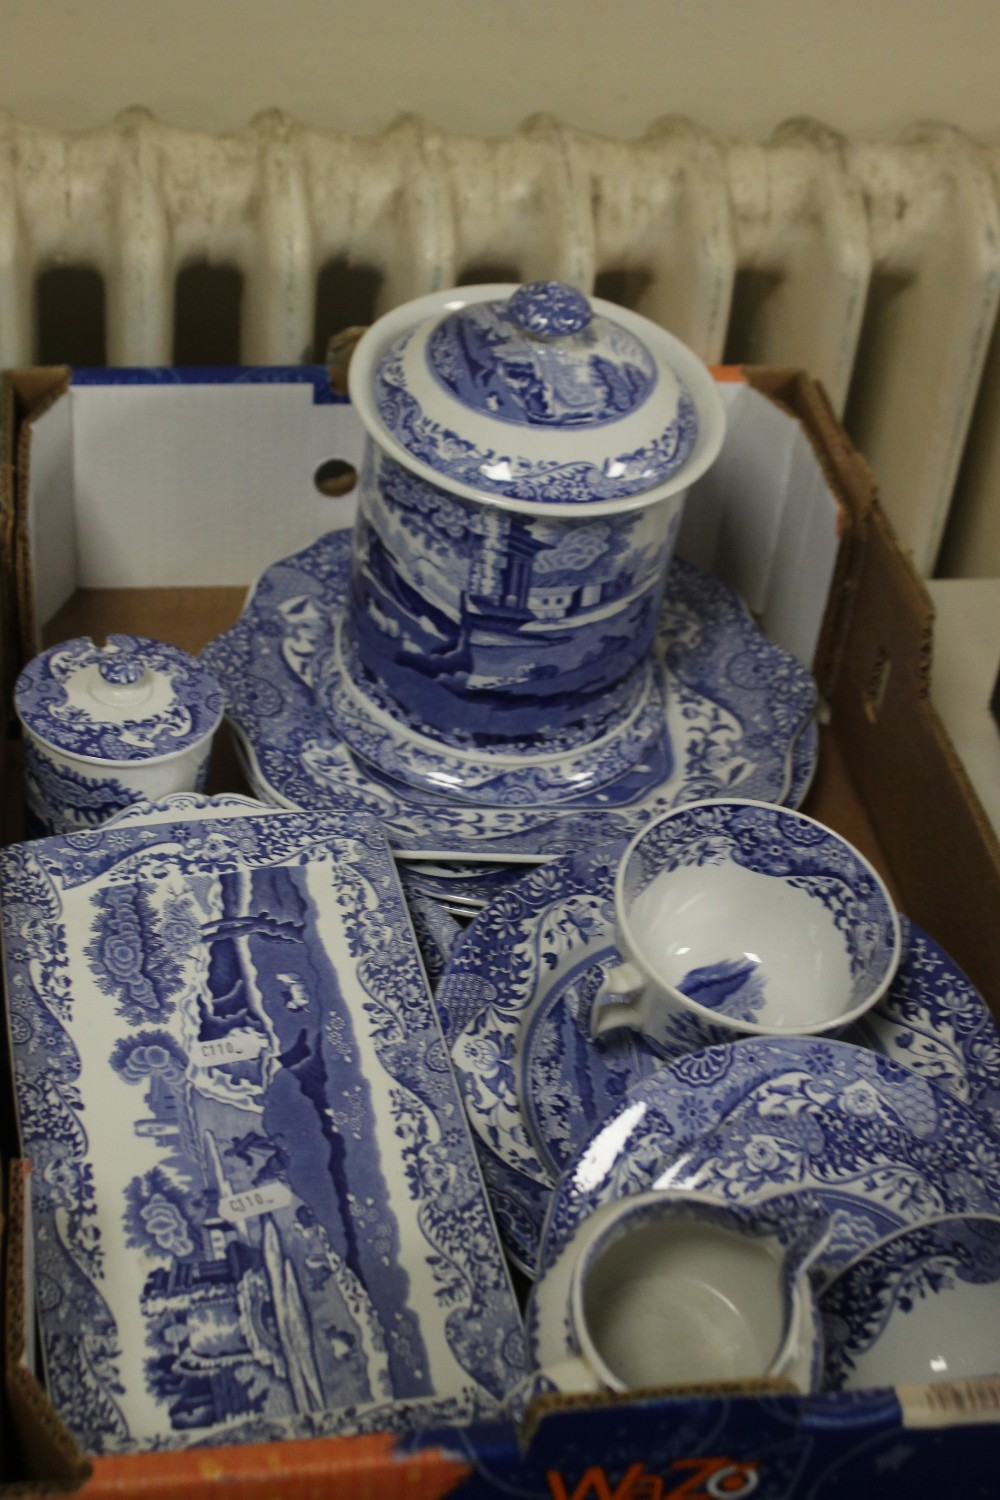 TWO TRAYS OF BLUE & WHITE CERAMICS TO INCLUDE SPODE (trays not included) - Image 3 of 3